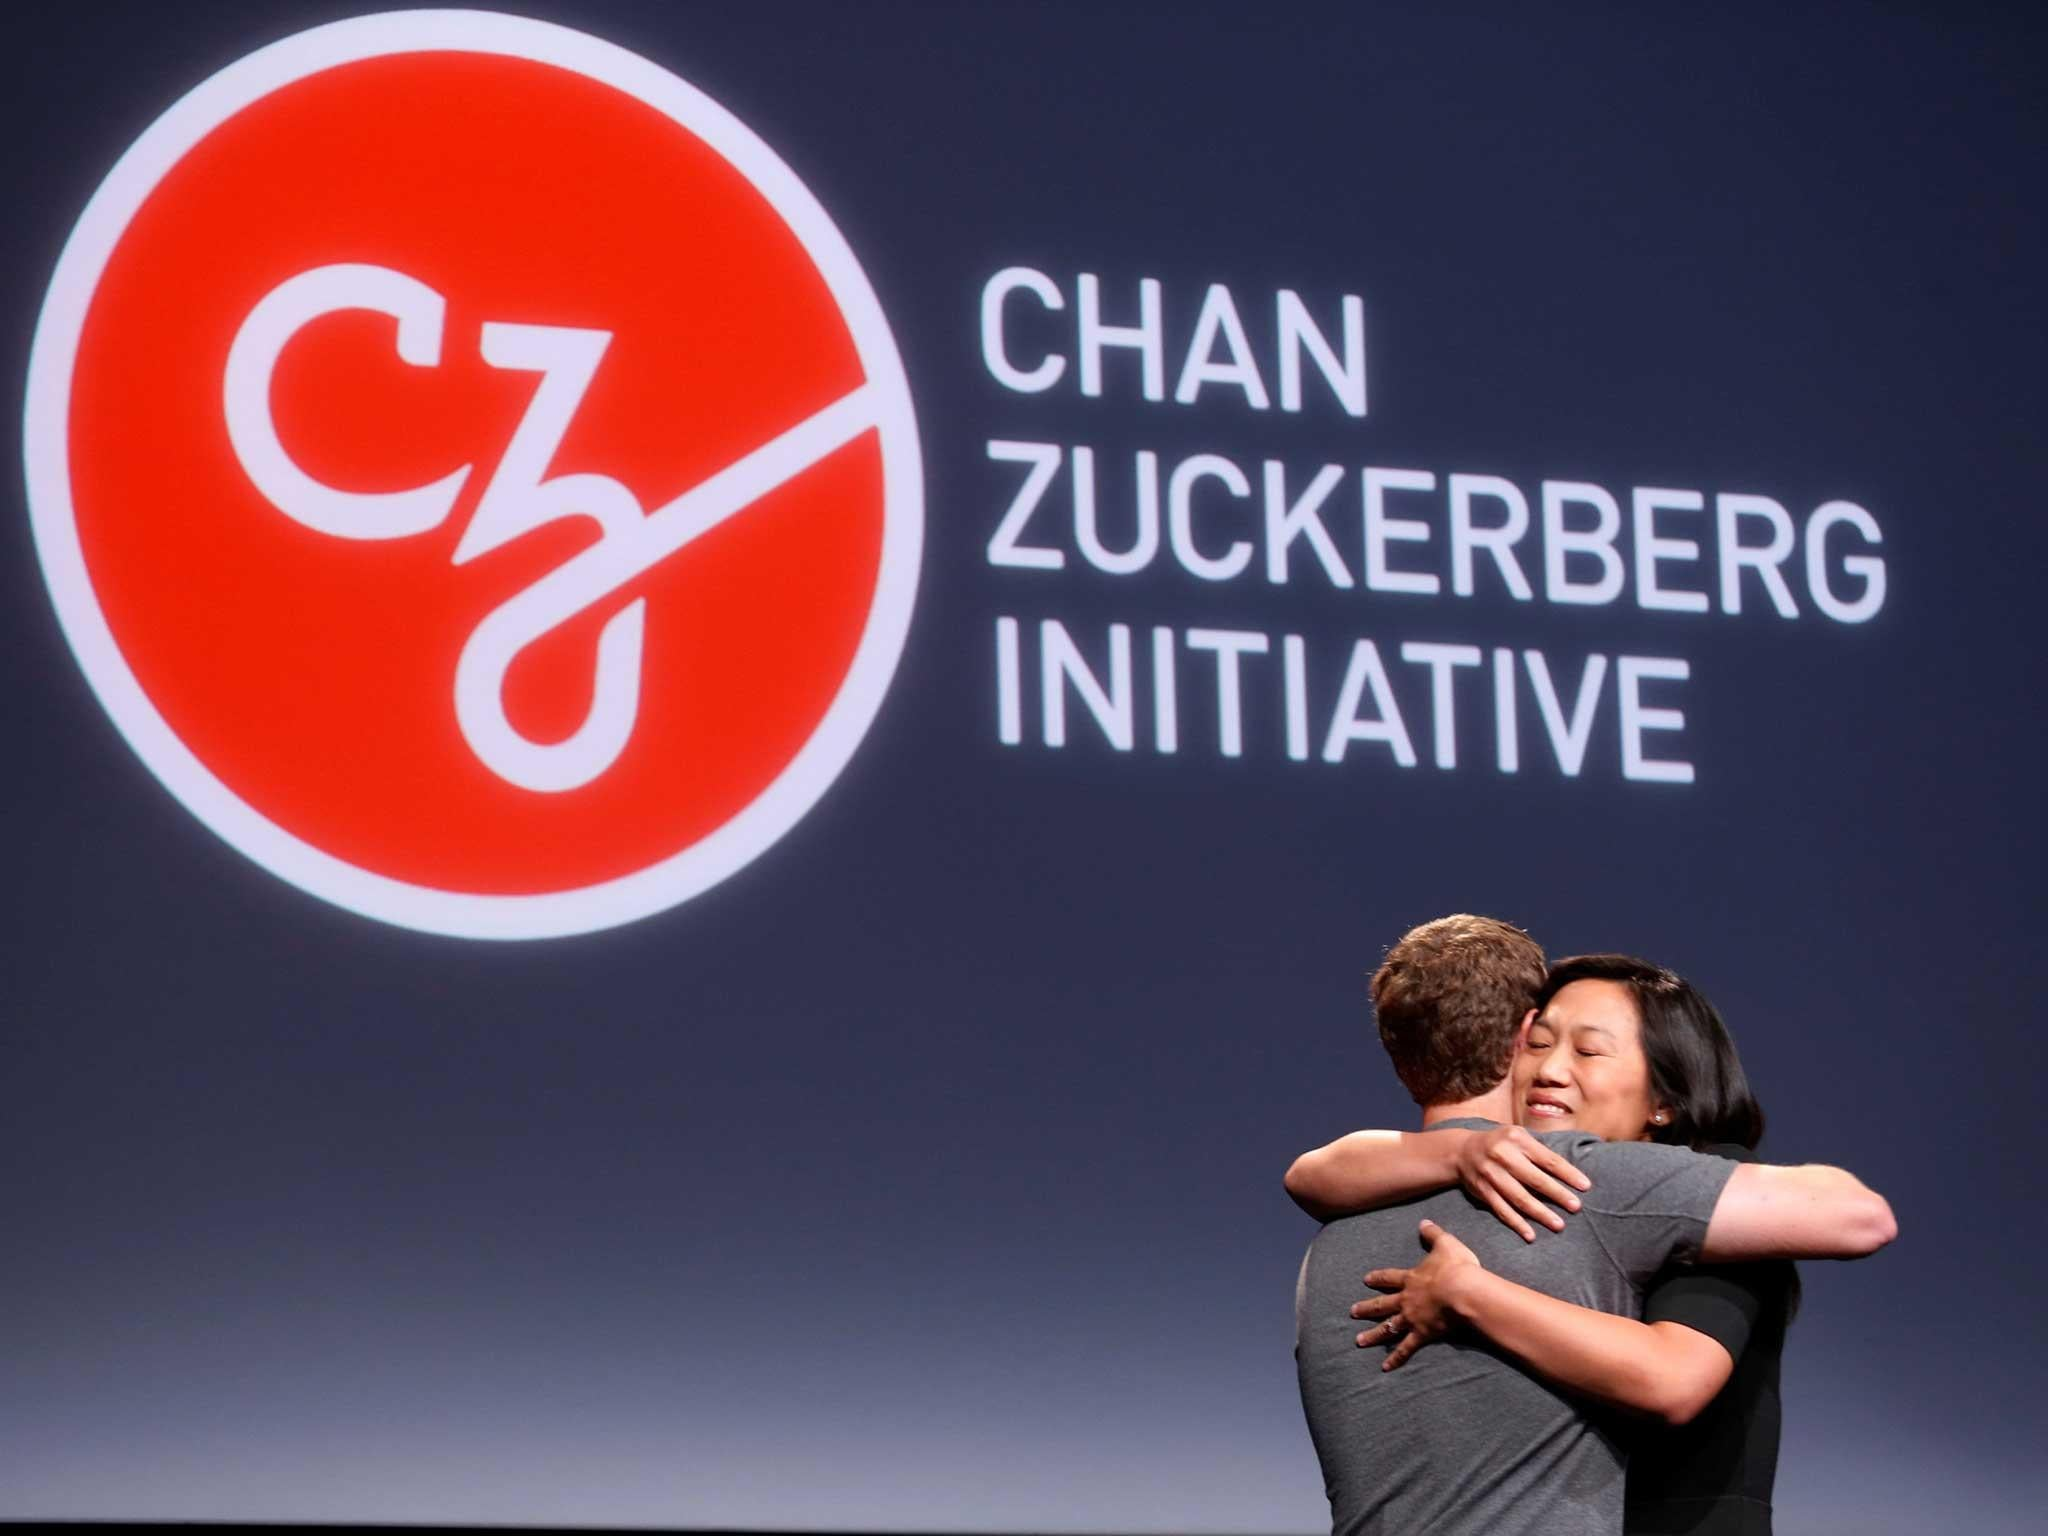 Mark and Priscilla Zuckerberg give billions to 'cure all disease' – but  why, and what will that look like? | The Independent | The Independent